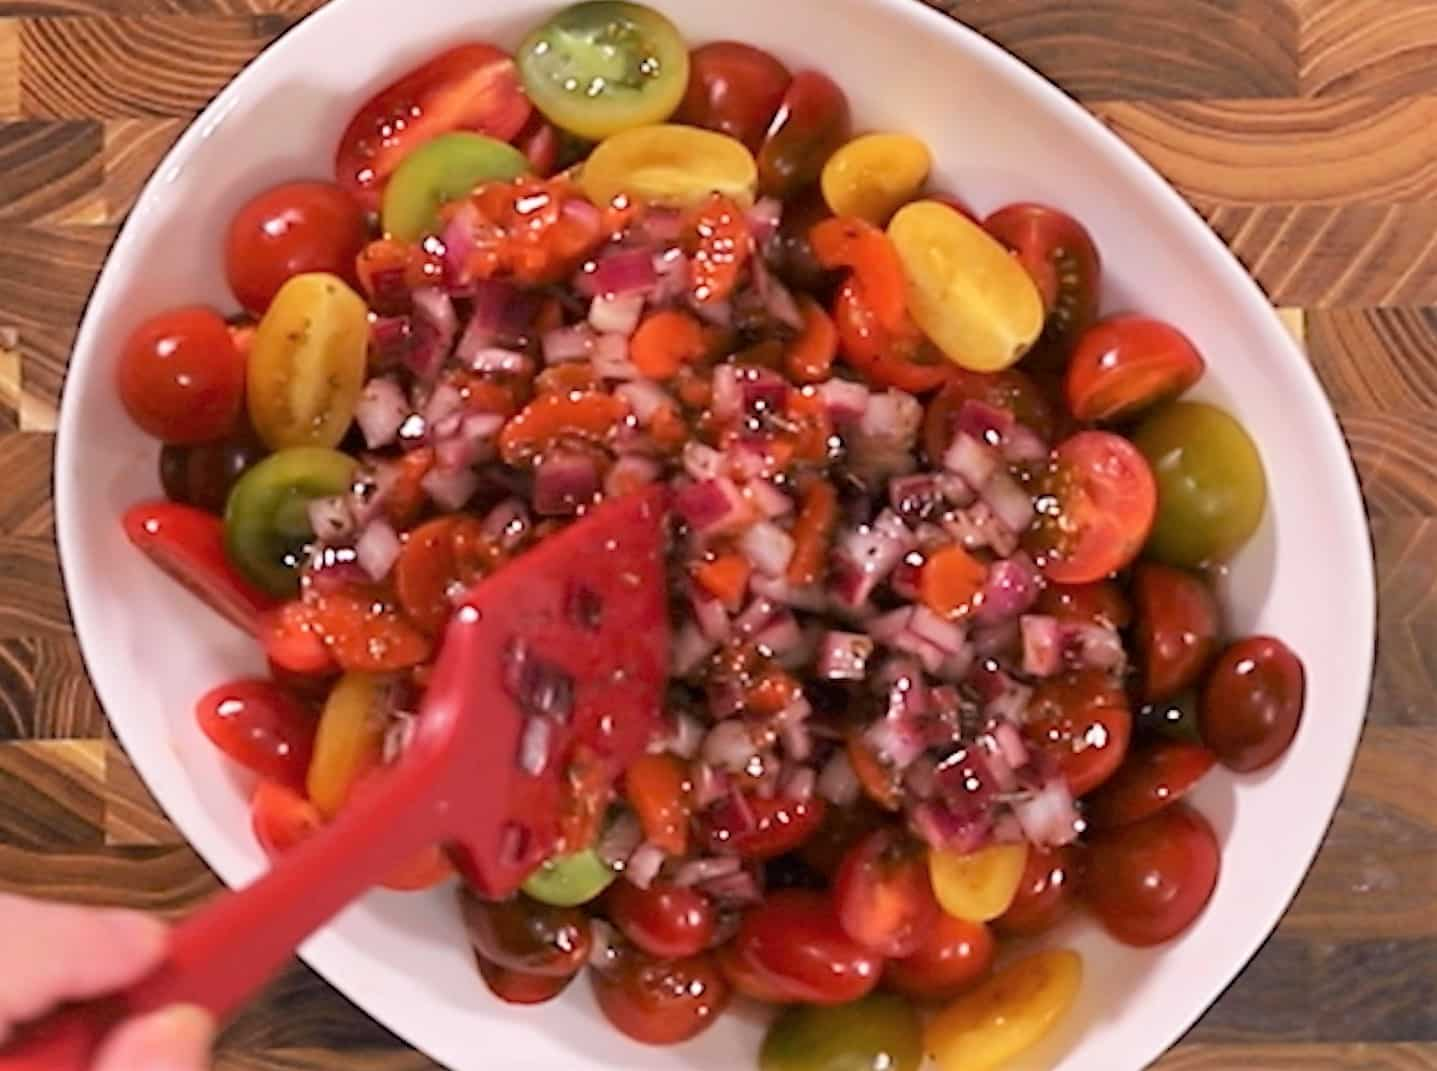 White serving platter with the marinade being mixed into the sliced tomatoes.